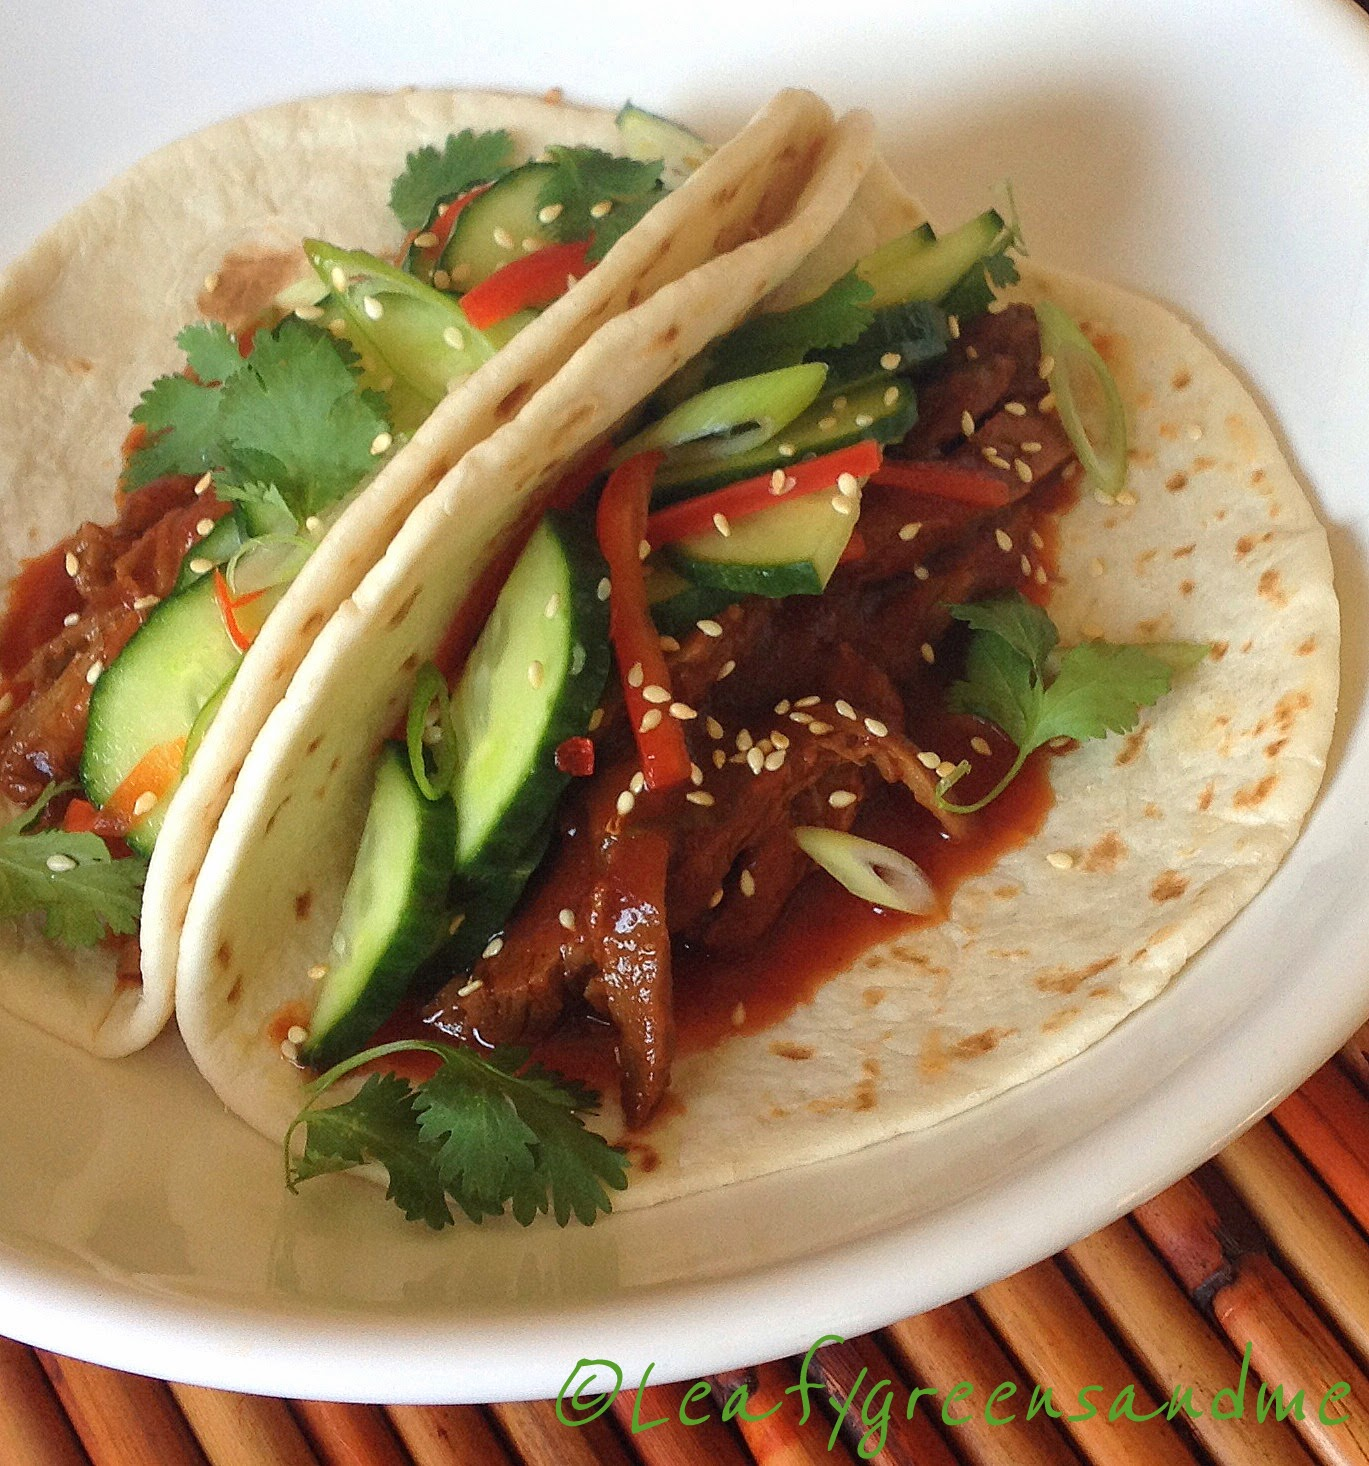 Spicy Korean Tacos with Pickled Cucumber Salad | Leafy Greens and Me